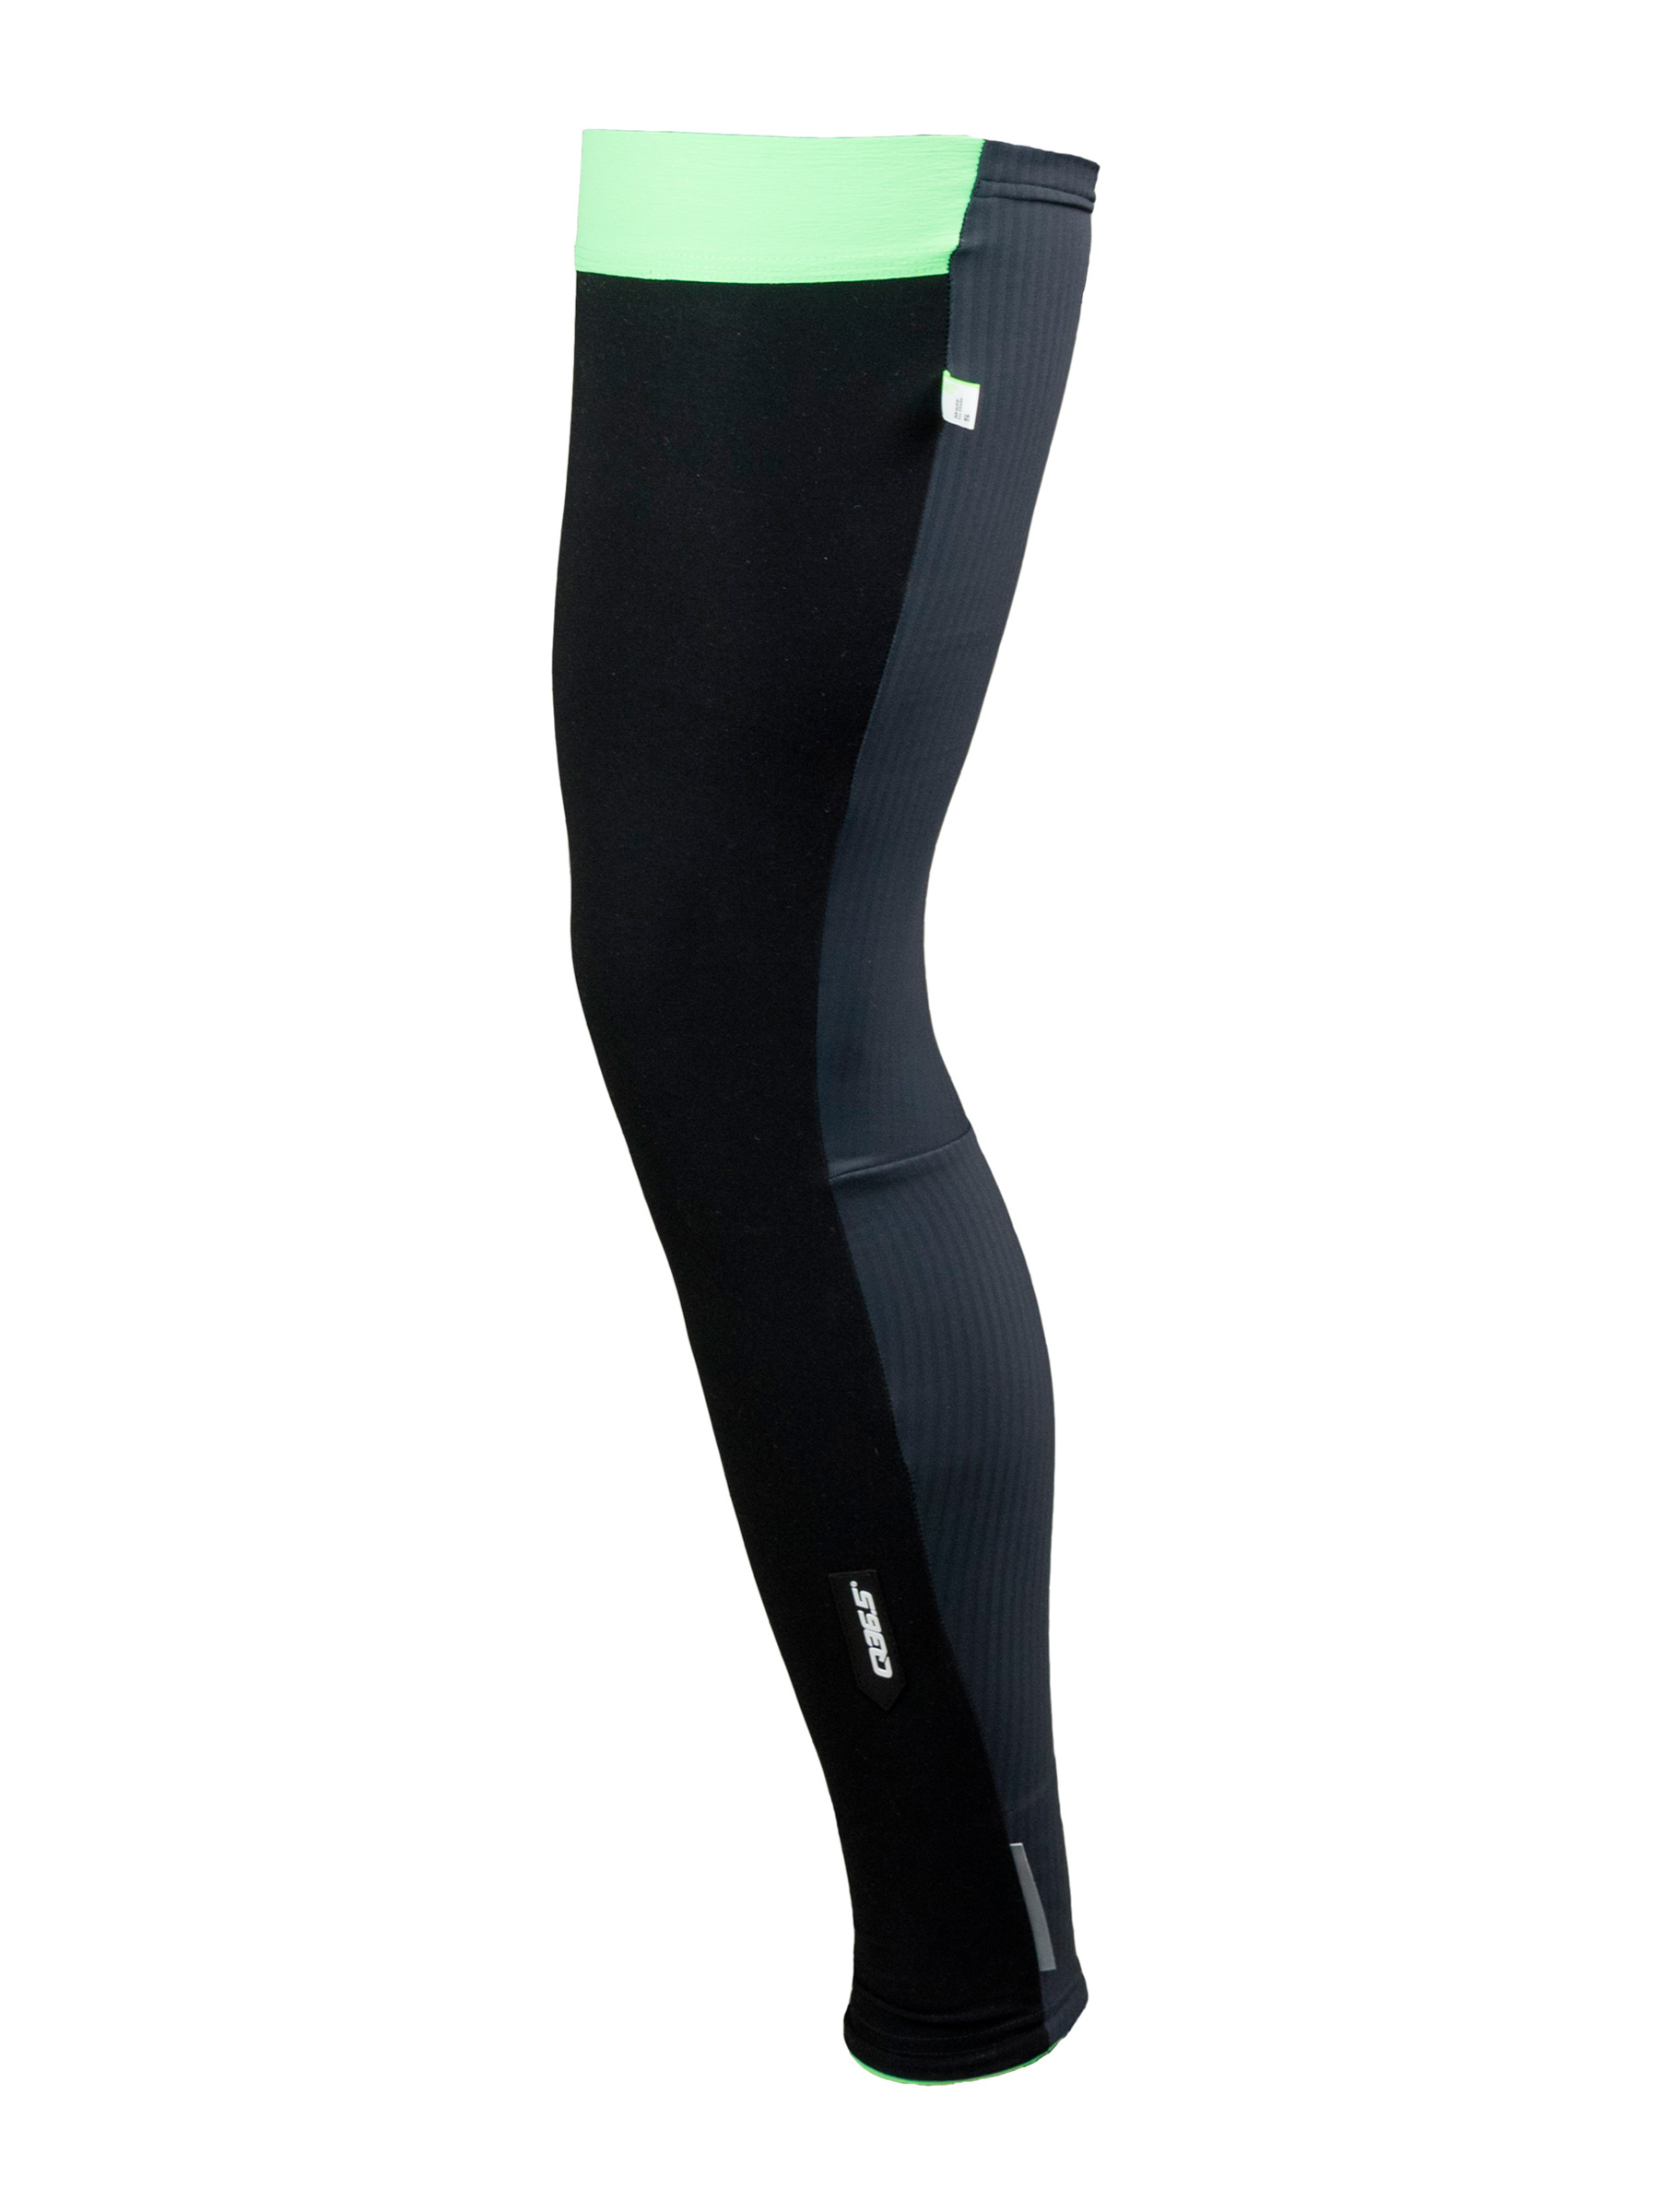 Cycling pre-shape leg warmers Q36.5 - side